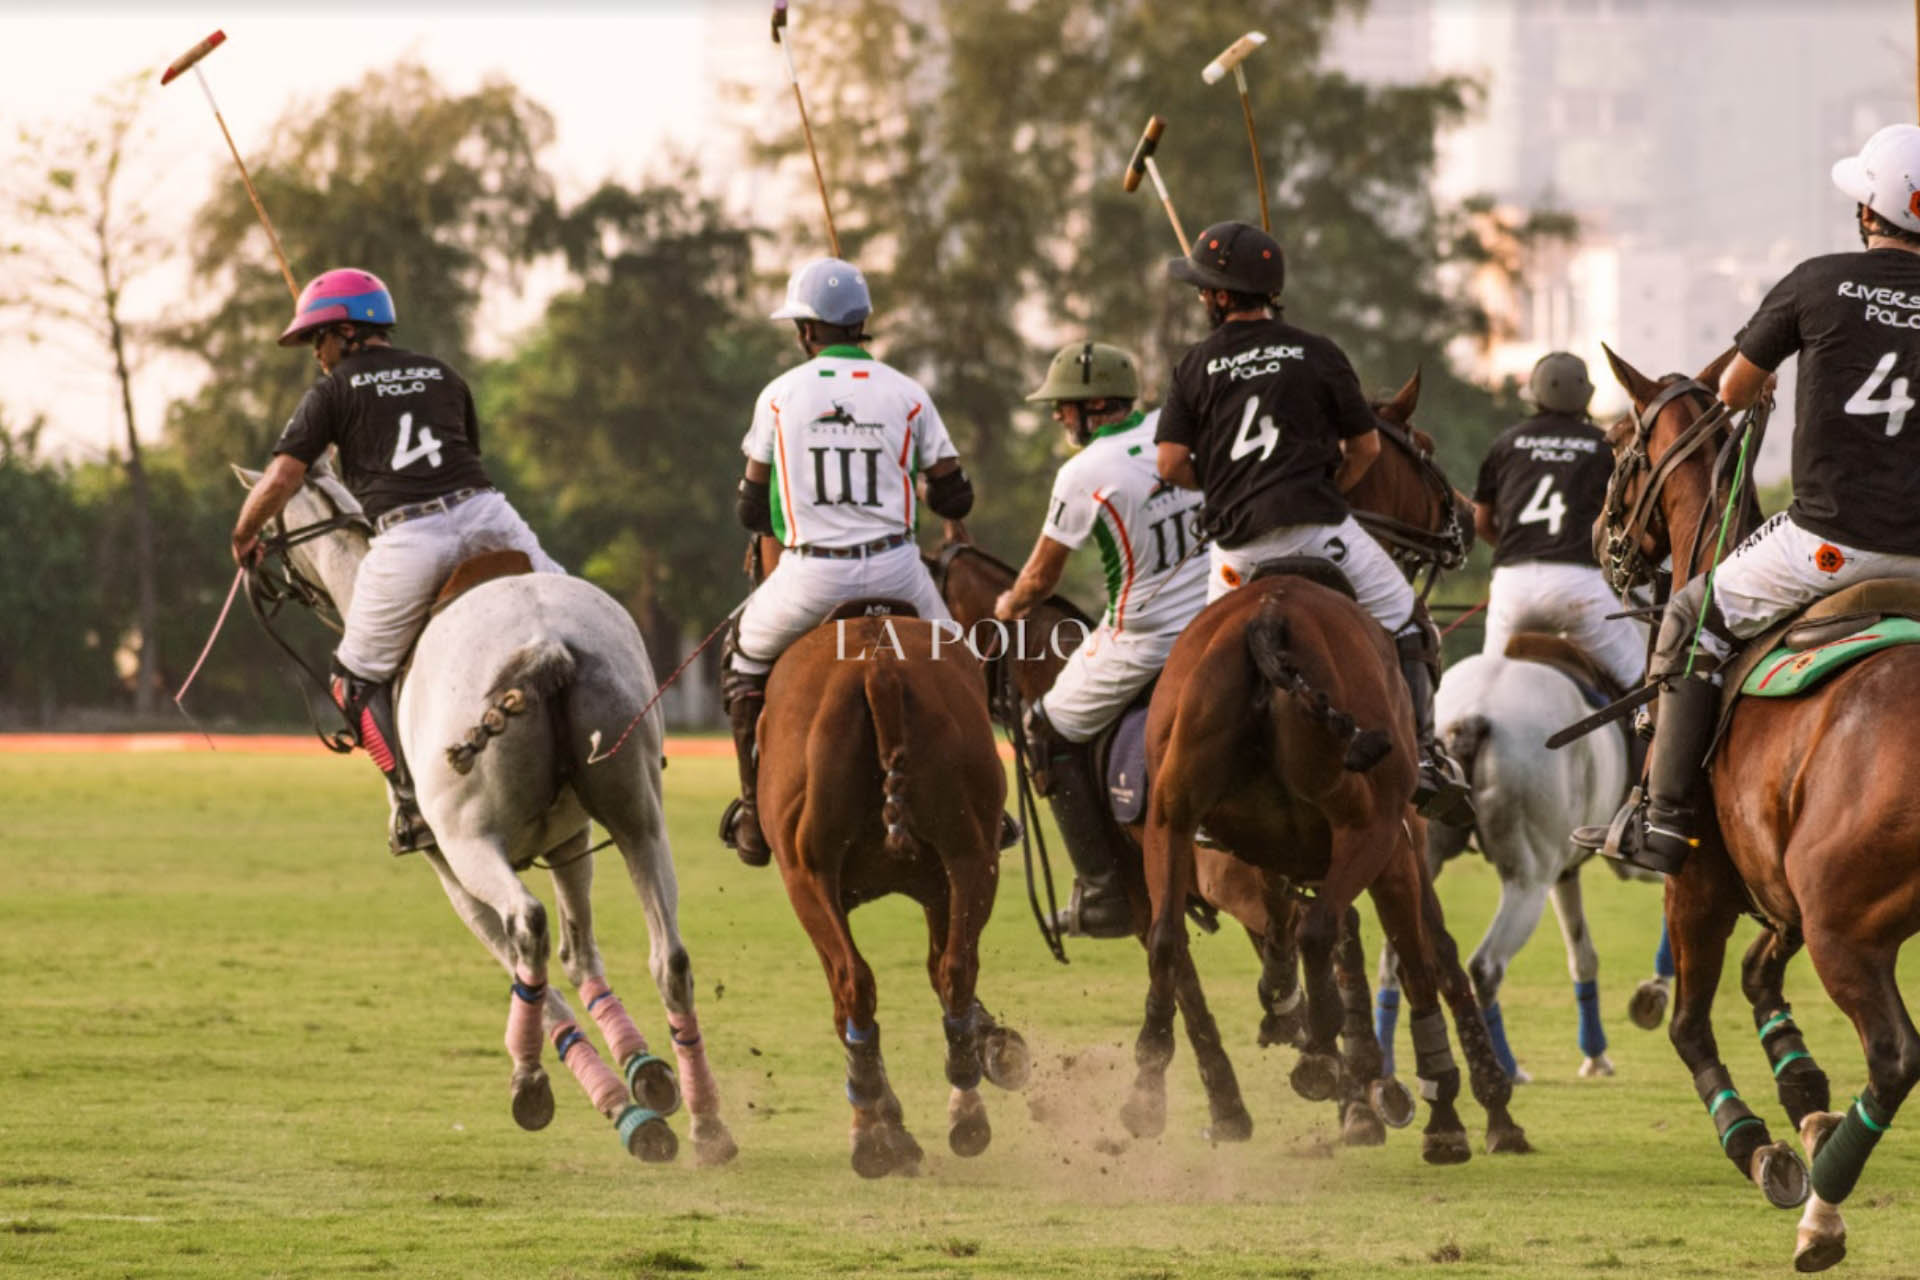 Claiming The Victory Was Jinal Panther Team At The Jindal Panther Cup